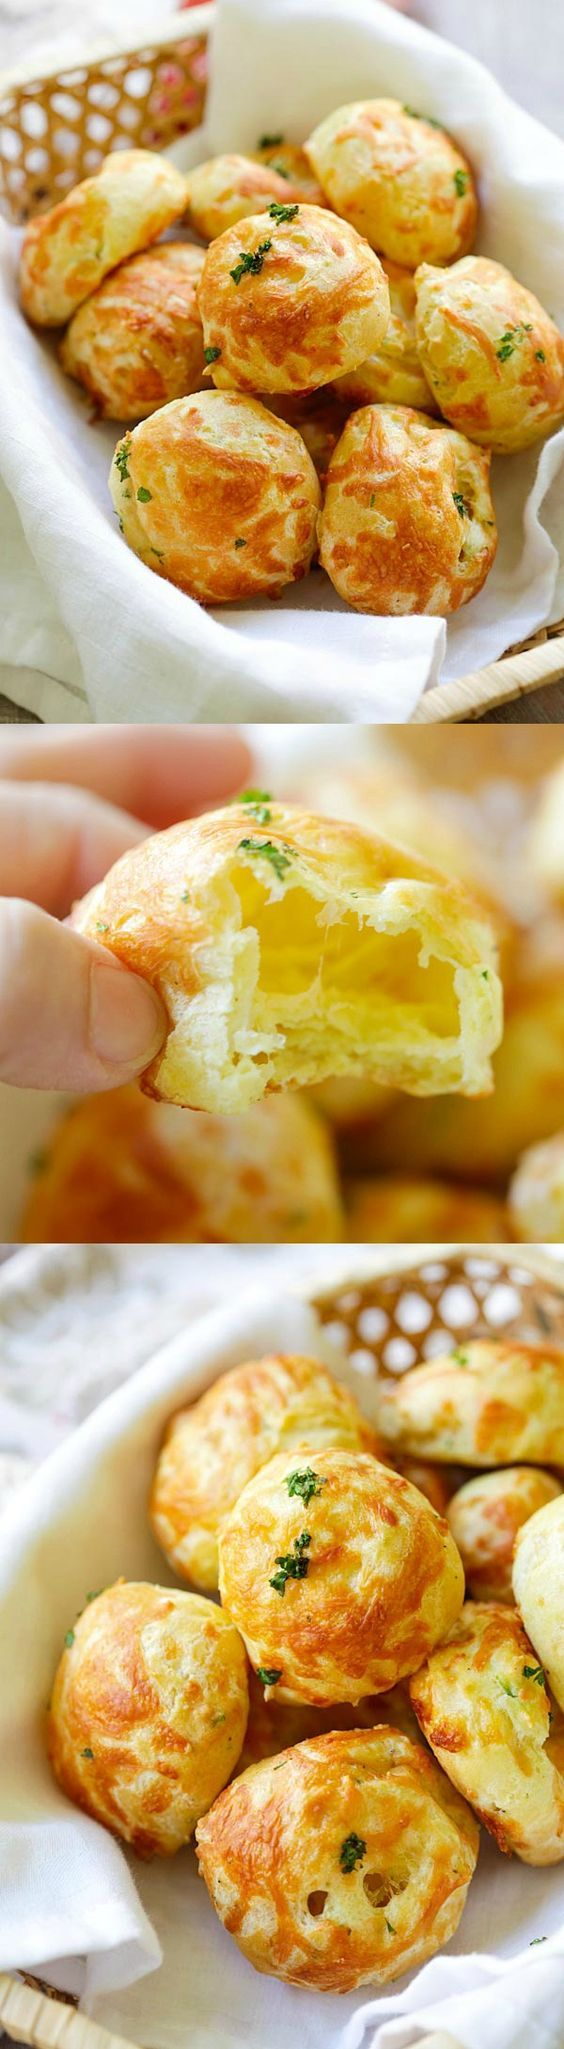 Cheese Puffs (Gougeres) - best and easiest recipe for puffy light and airy French cheese puffs. Loaded with mozzarella and parmesan cheese so good  rasamalaysia.com